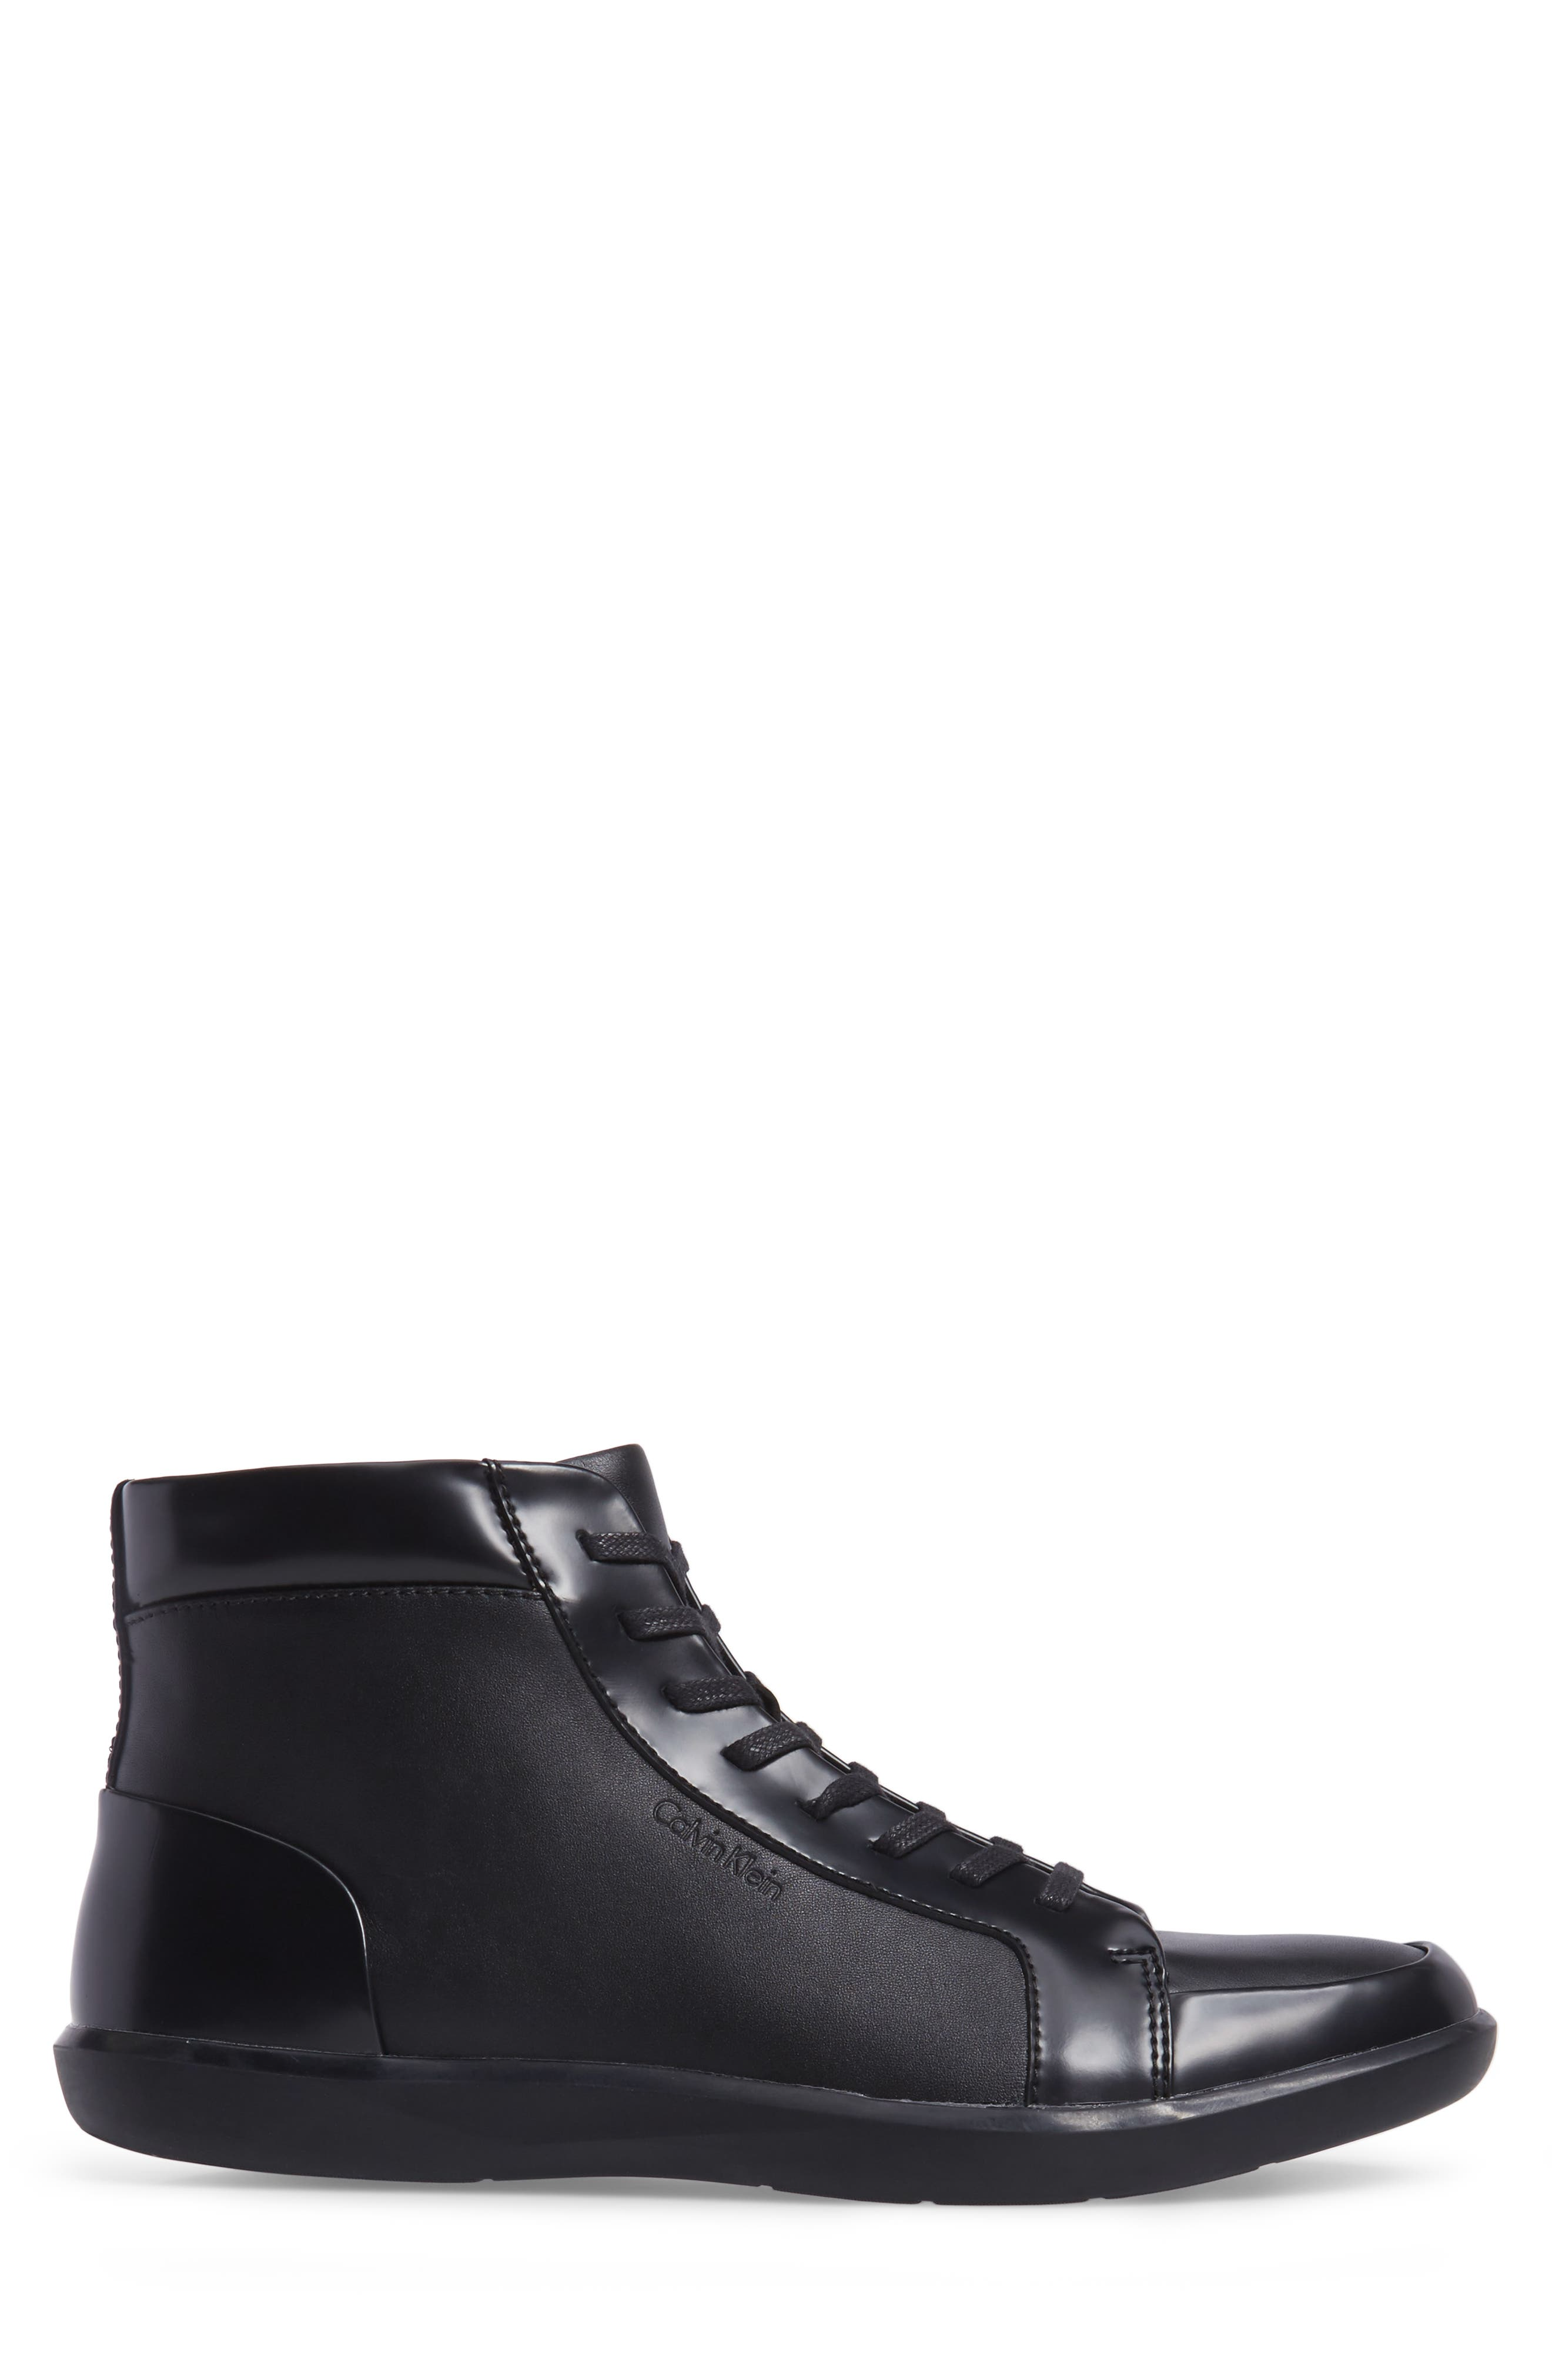 Malvern Sneaker,                             Alternate thumbnail 3, color,                             Black